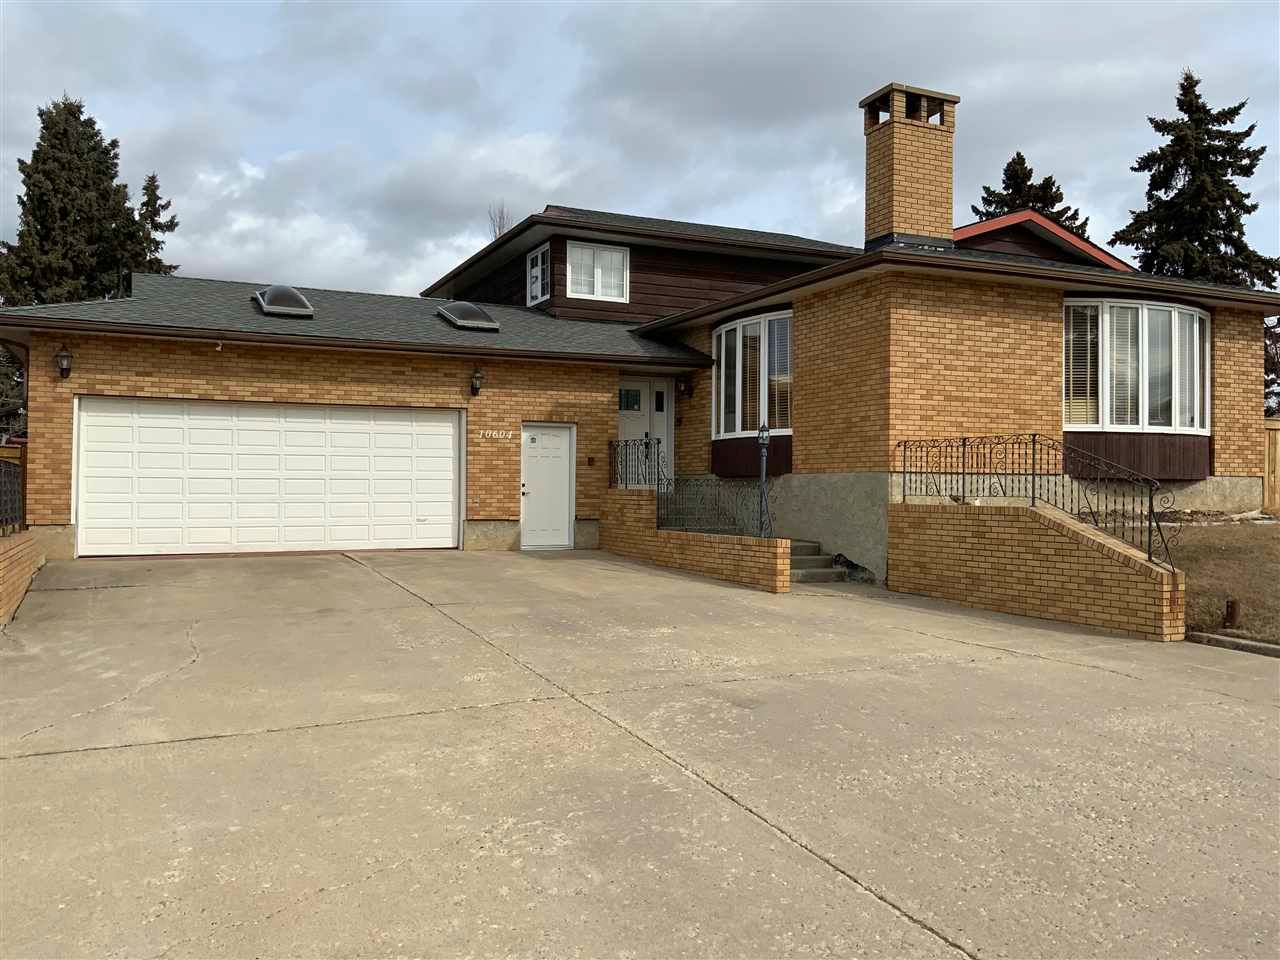 Big double car garage and RV parking with concrete driveway.